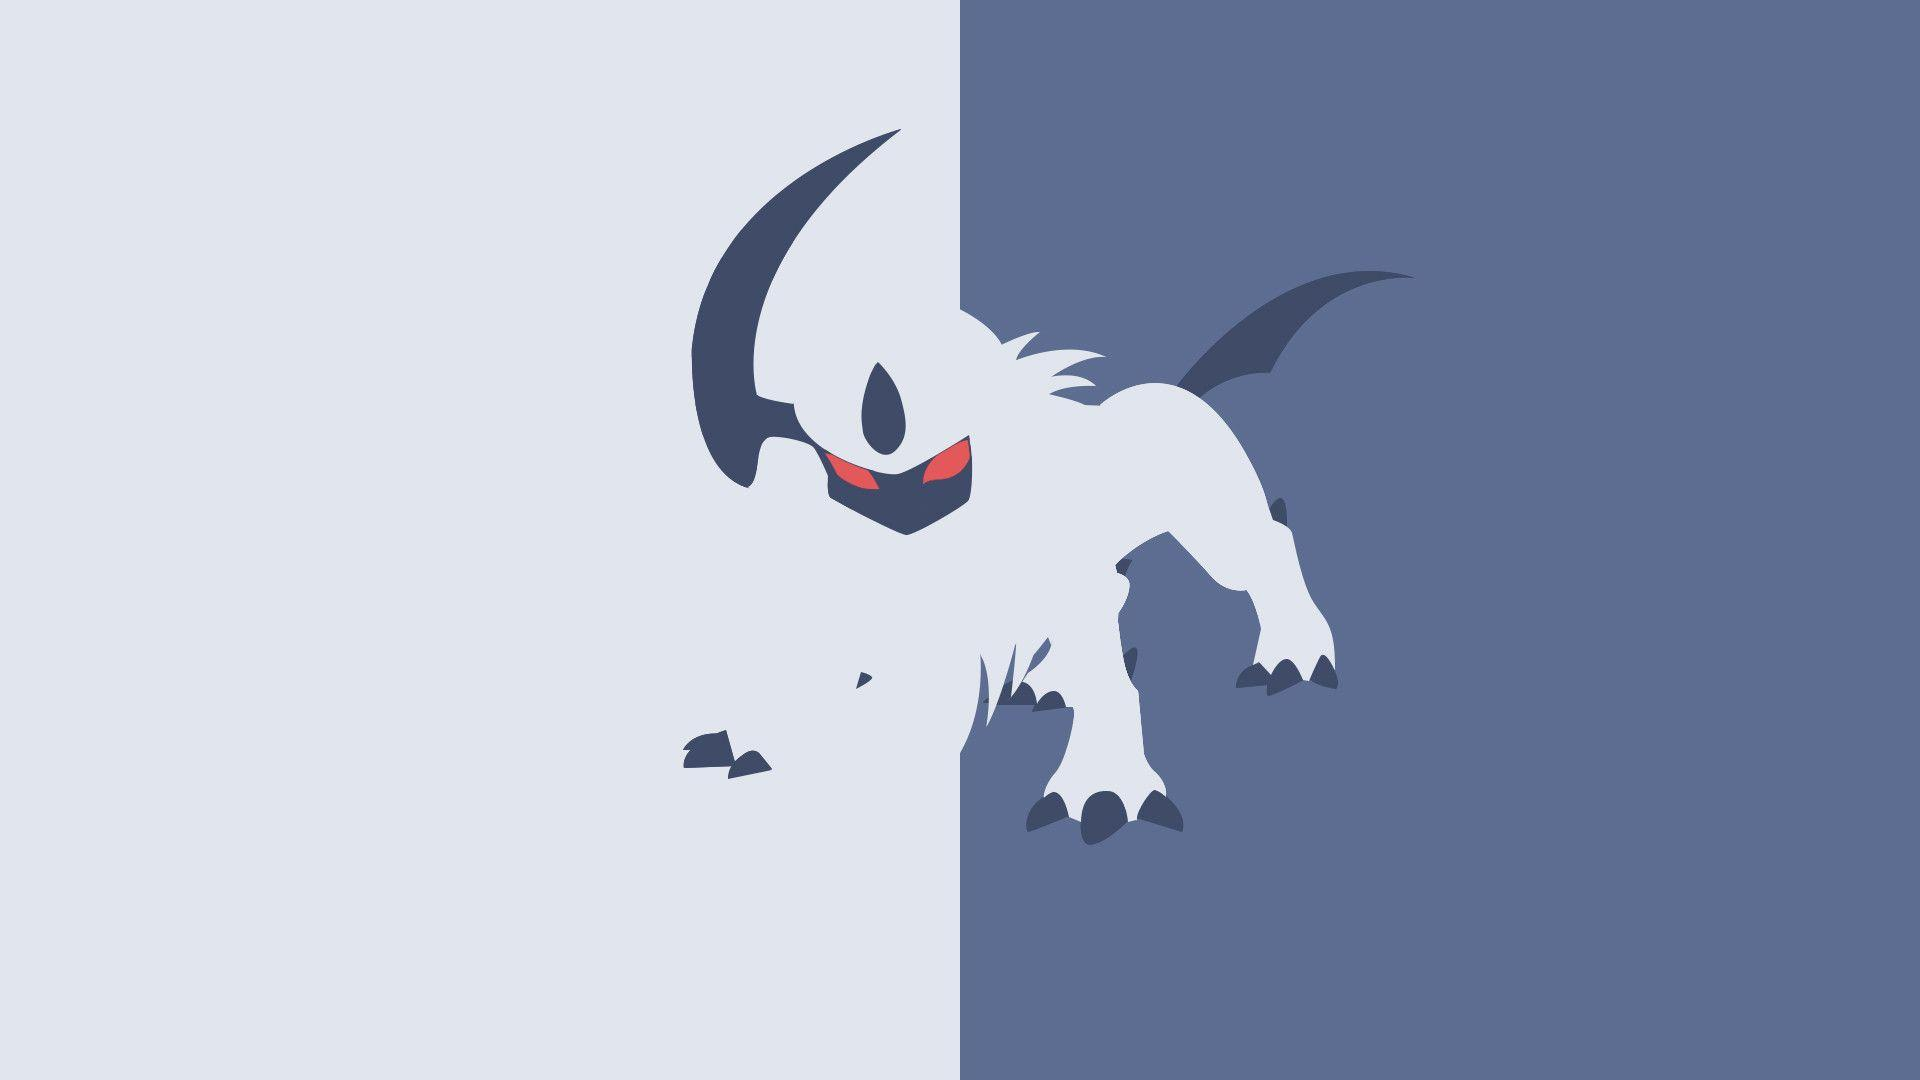 Shiny Absol Wallpapers ·①